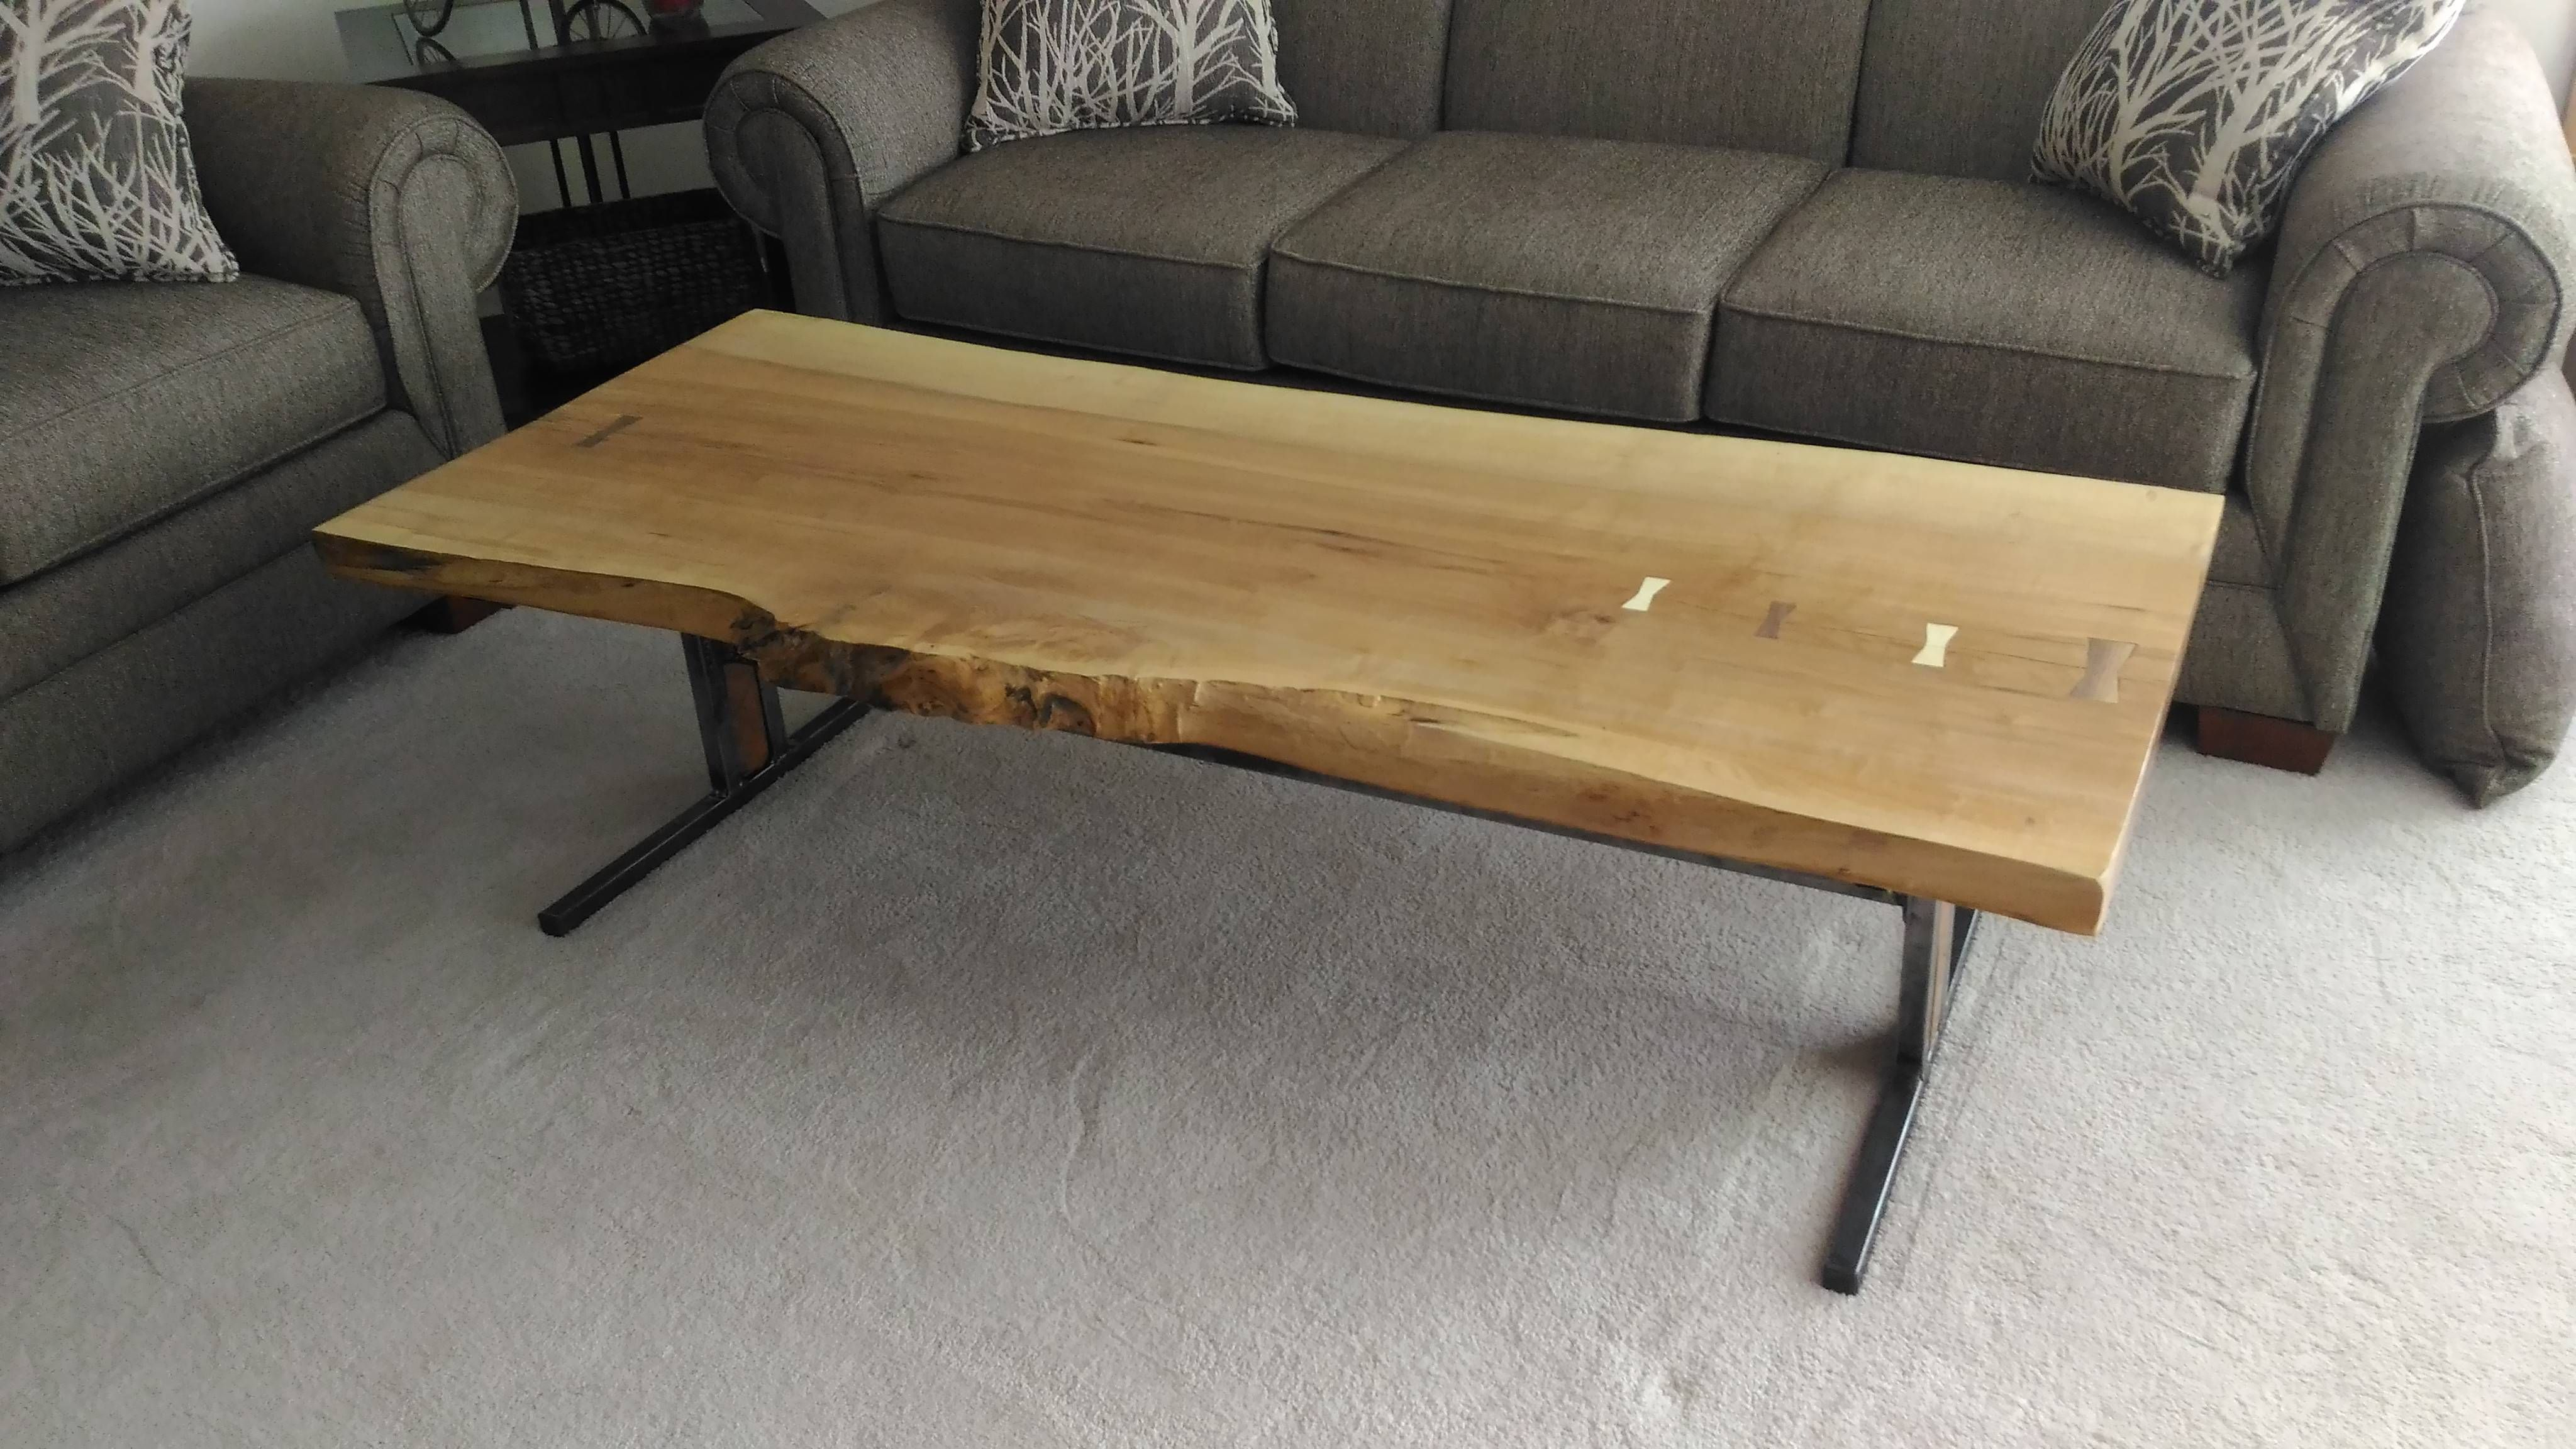 Ash Slab Wood Table From Scratch QuickCrafter